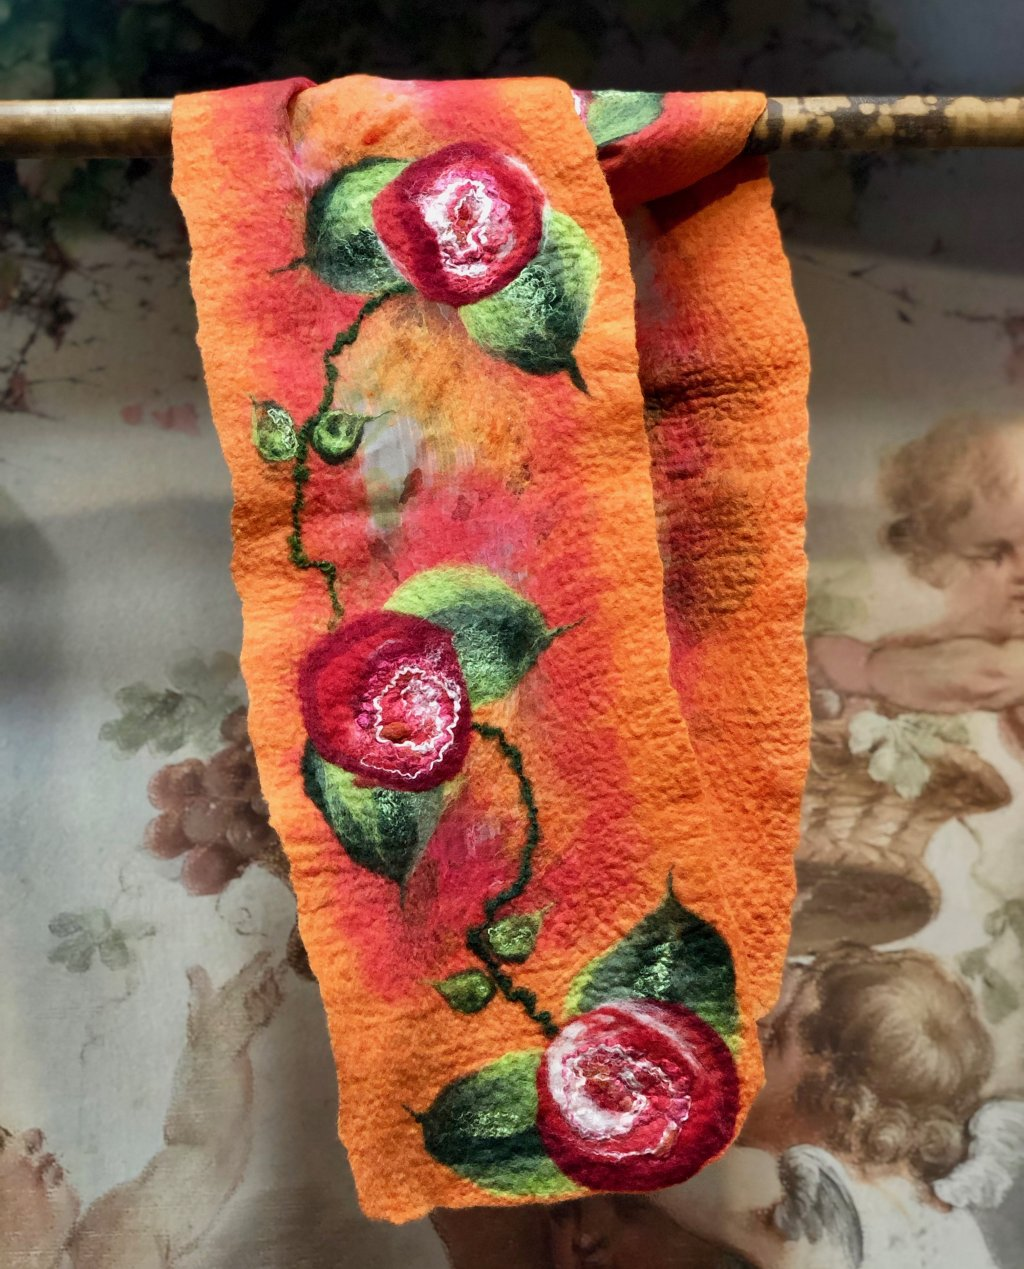 Agnes Foss - Felted Merino Scarf / Wrap - Red Roses on Orange Background with Organza Inserts